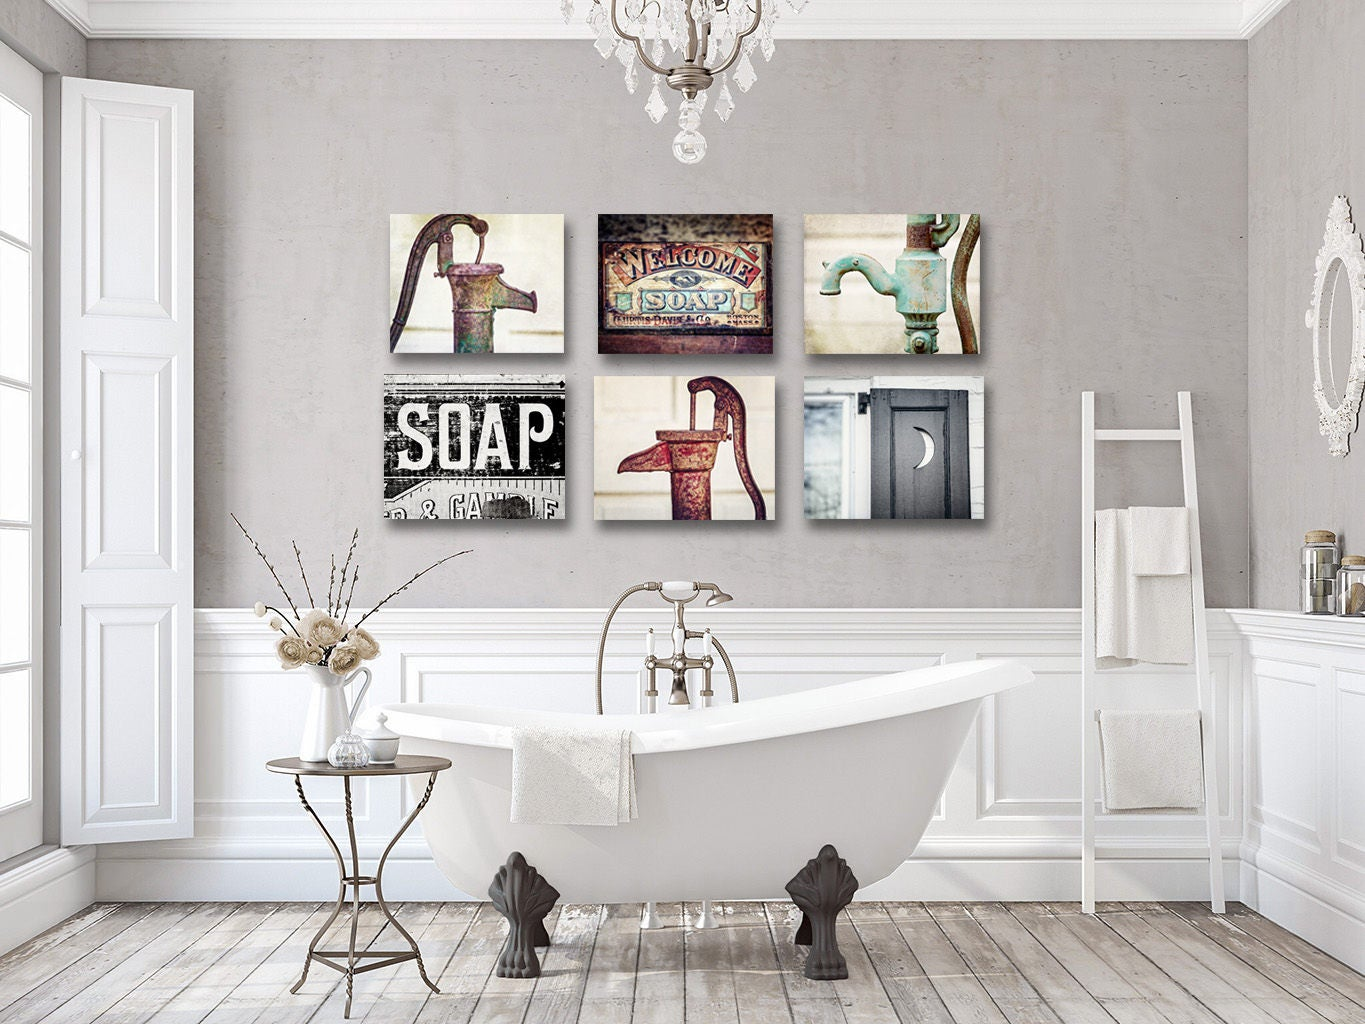 157 Curated Vintage Bathroom Light Fixtures Ideas By: Farmhouse Bathroom Decor Bathroom Wall Decor Rustic Sets For